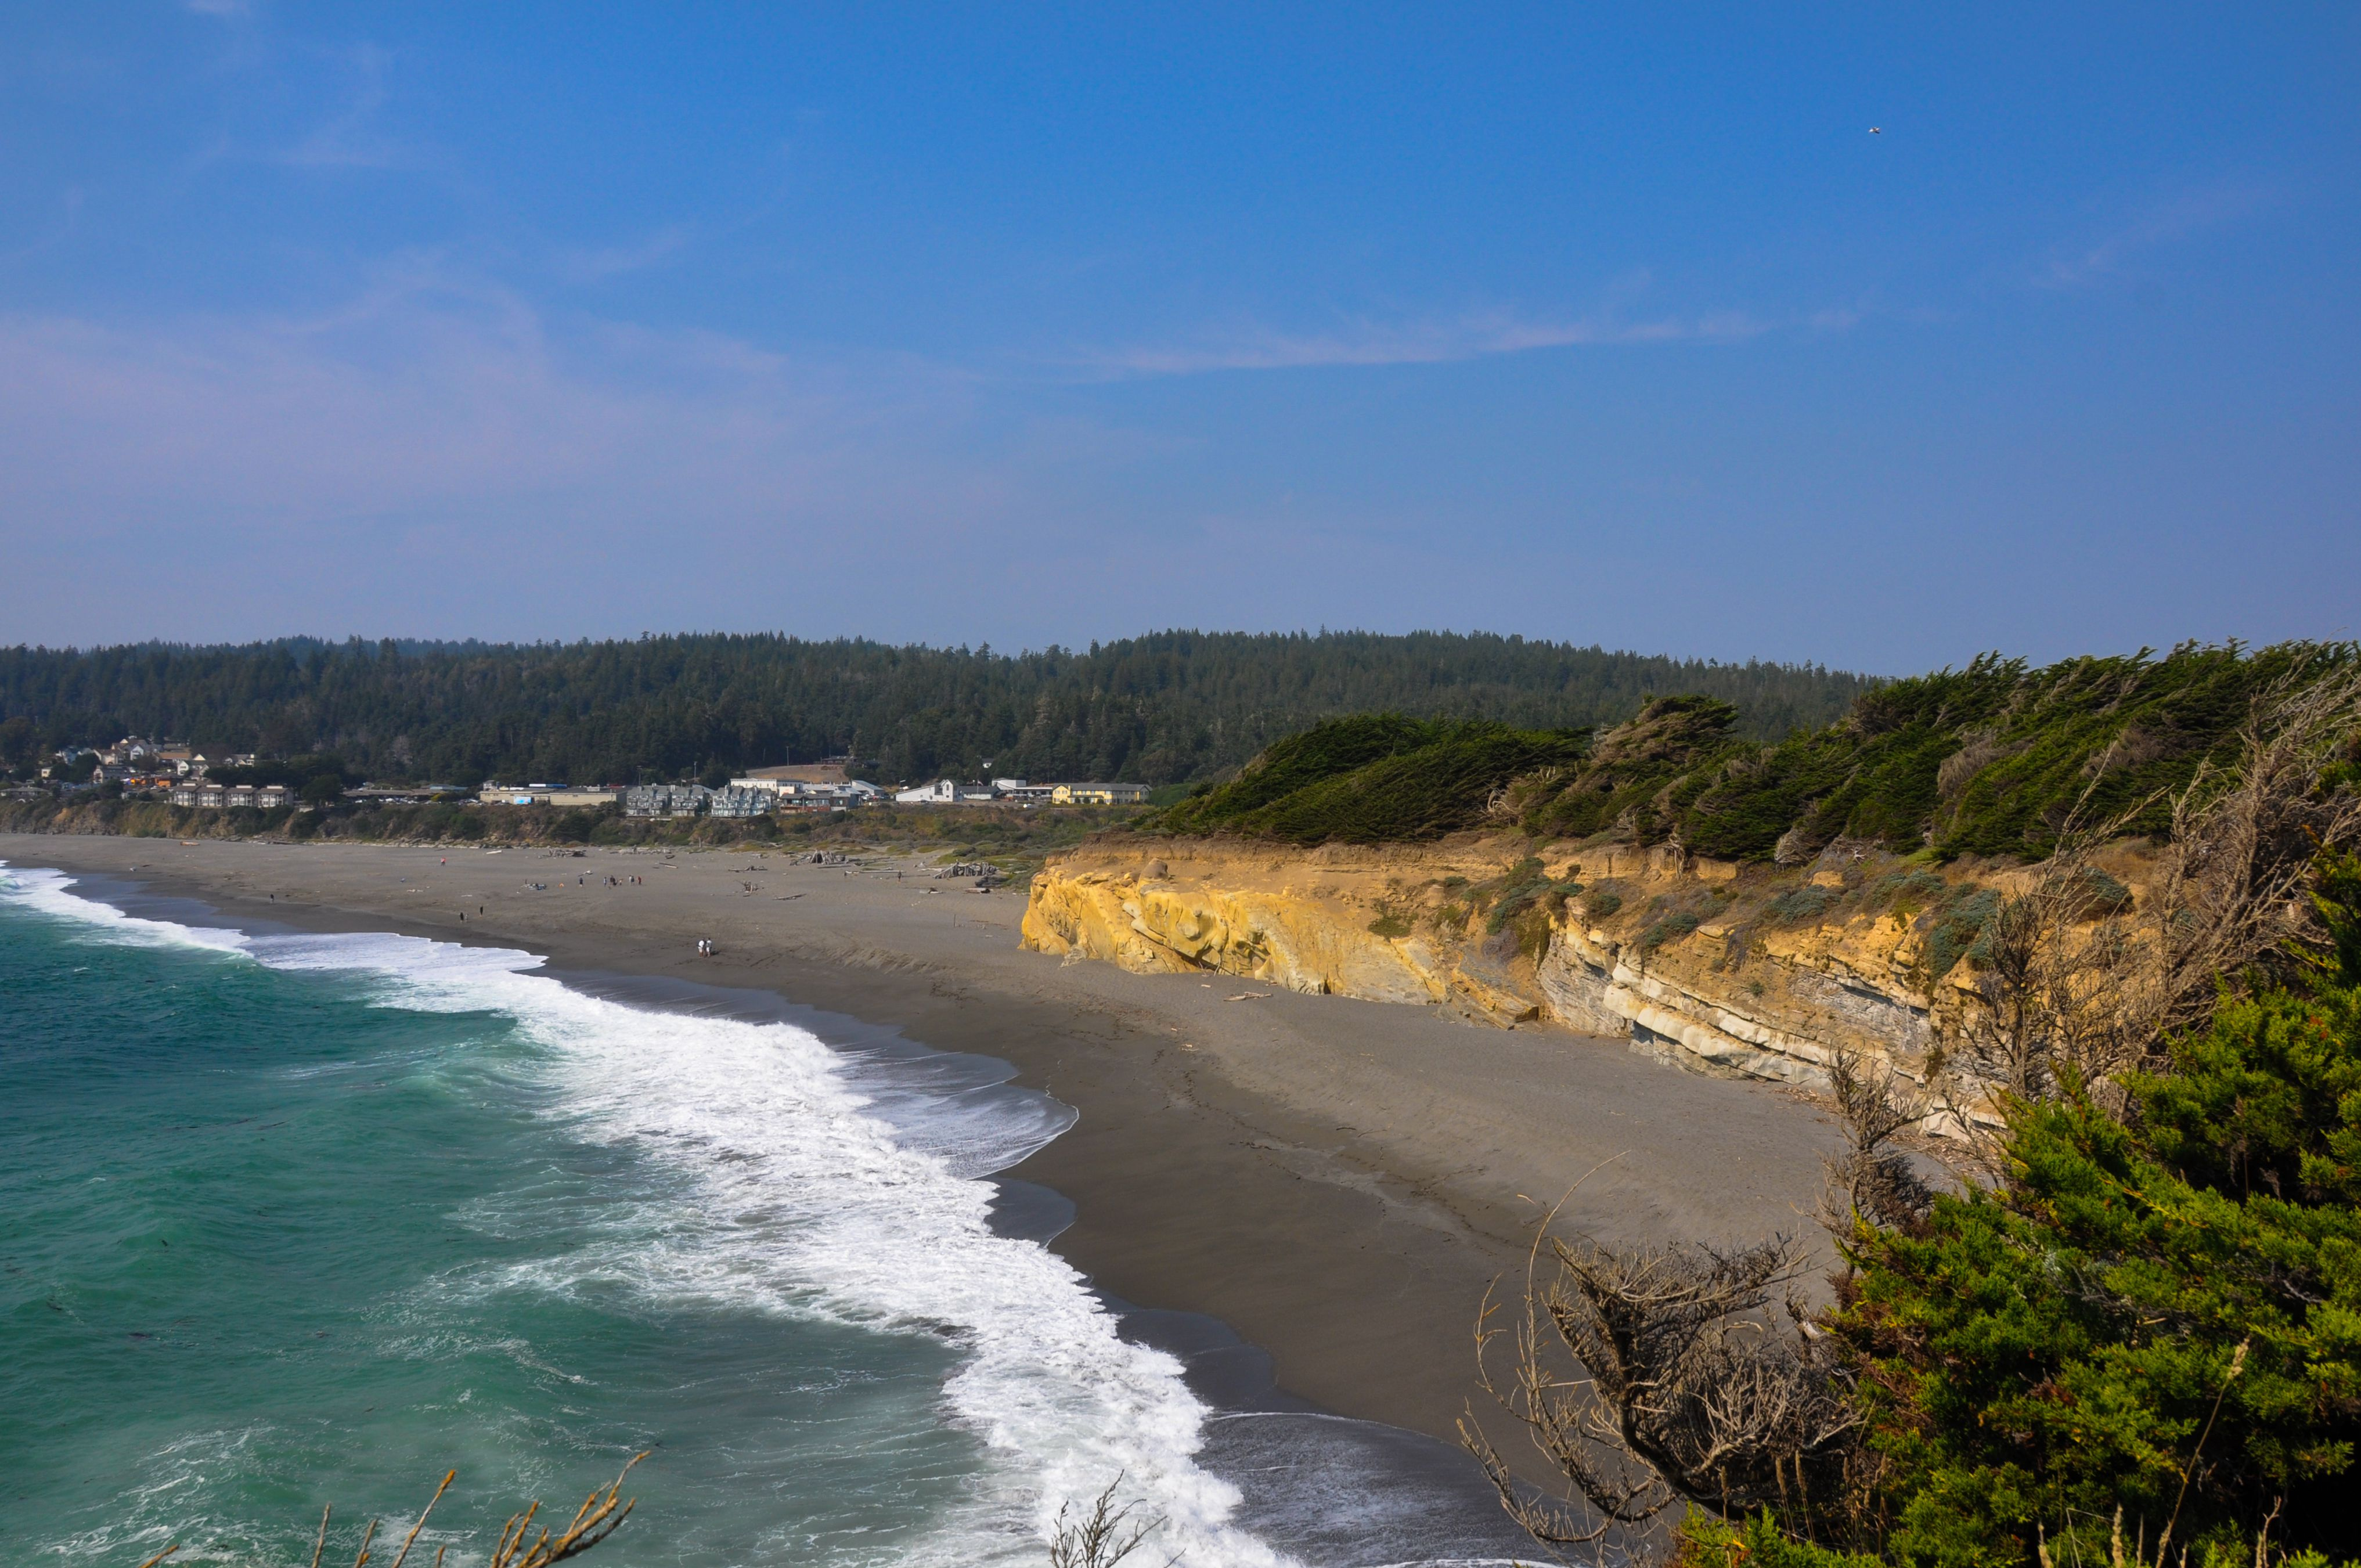 View of the Pacific Ocean overlooking the town of Gualala in Northern California with breaking waves